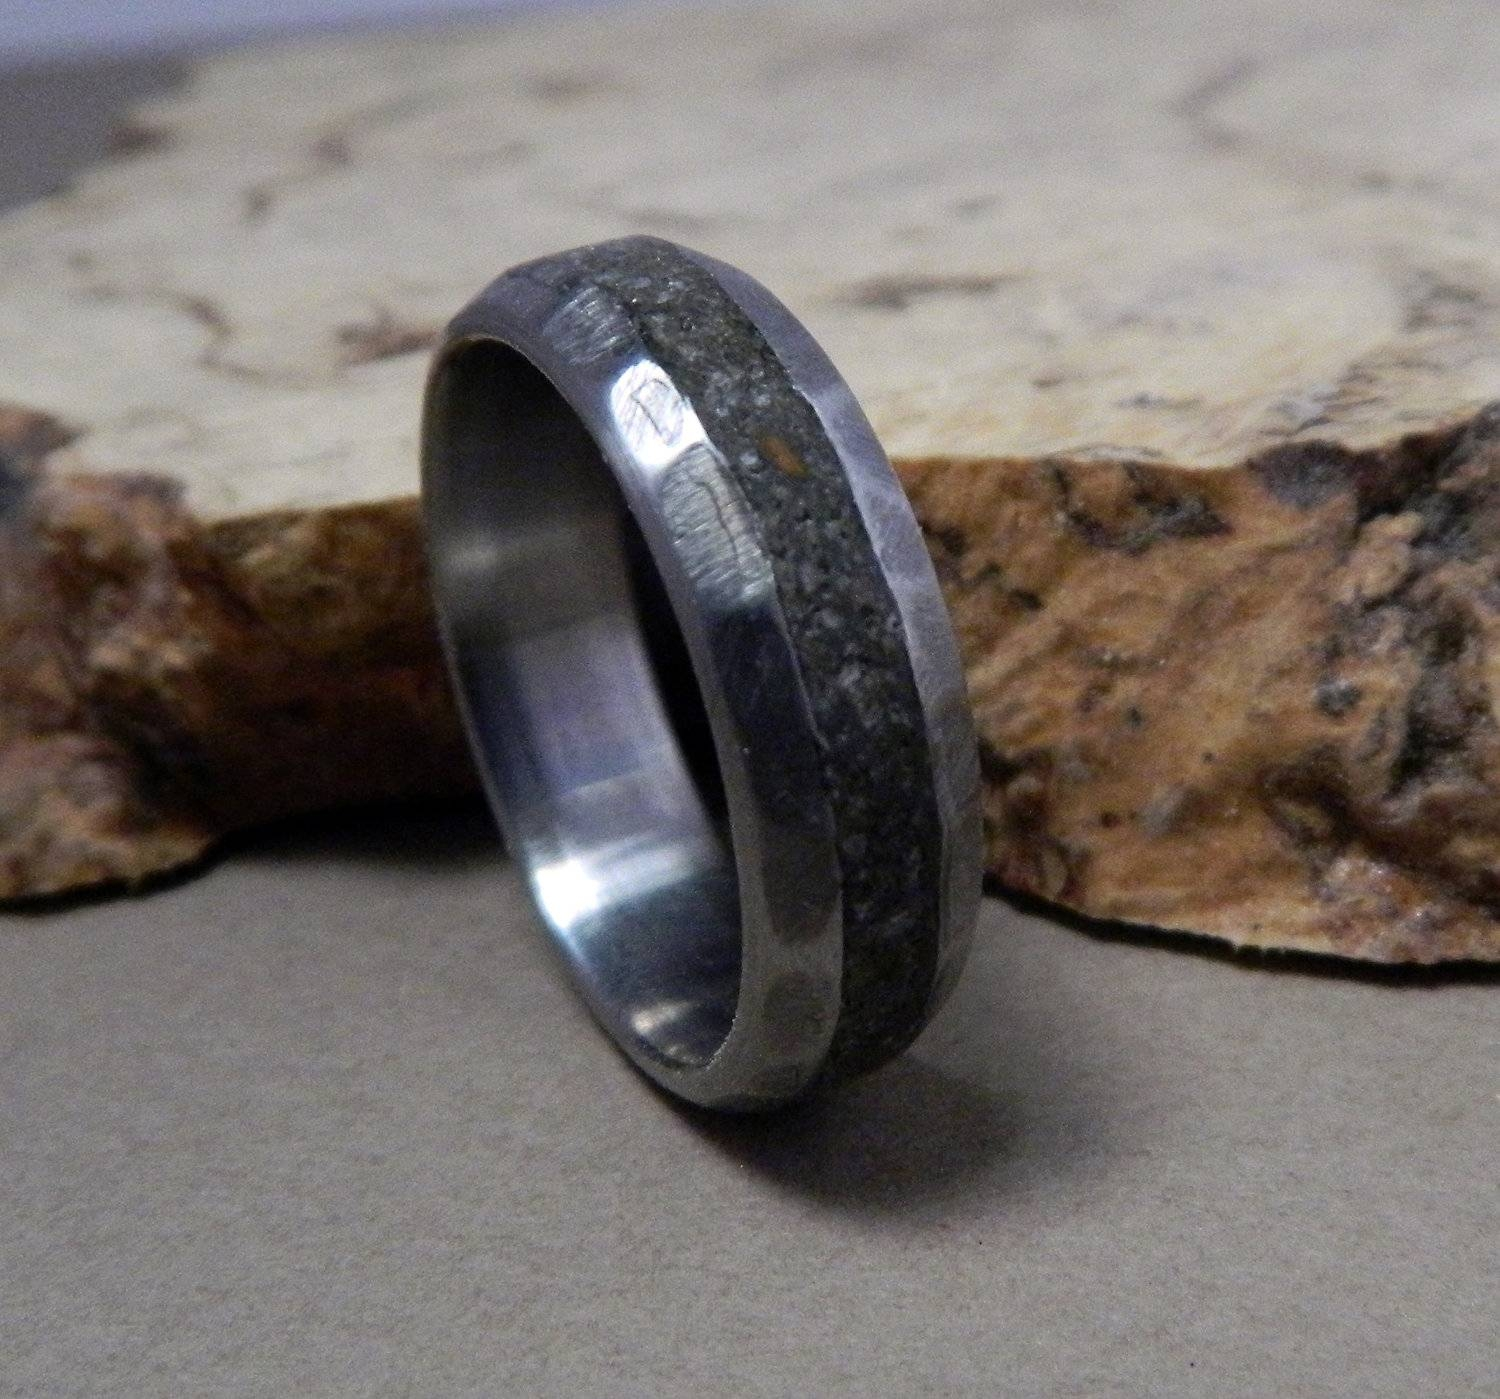 Titanium Ring, Concrete Ring, Wedding Ring, Wedding Band, Handmade Pertaining To Mens Handmade Wedding Bands (View 11 of 15)